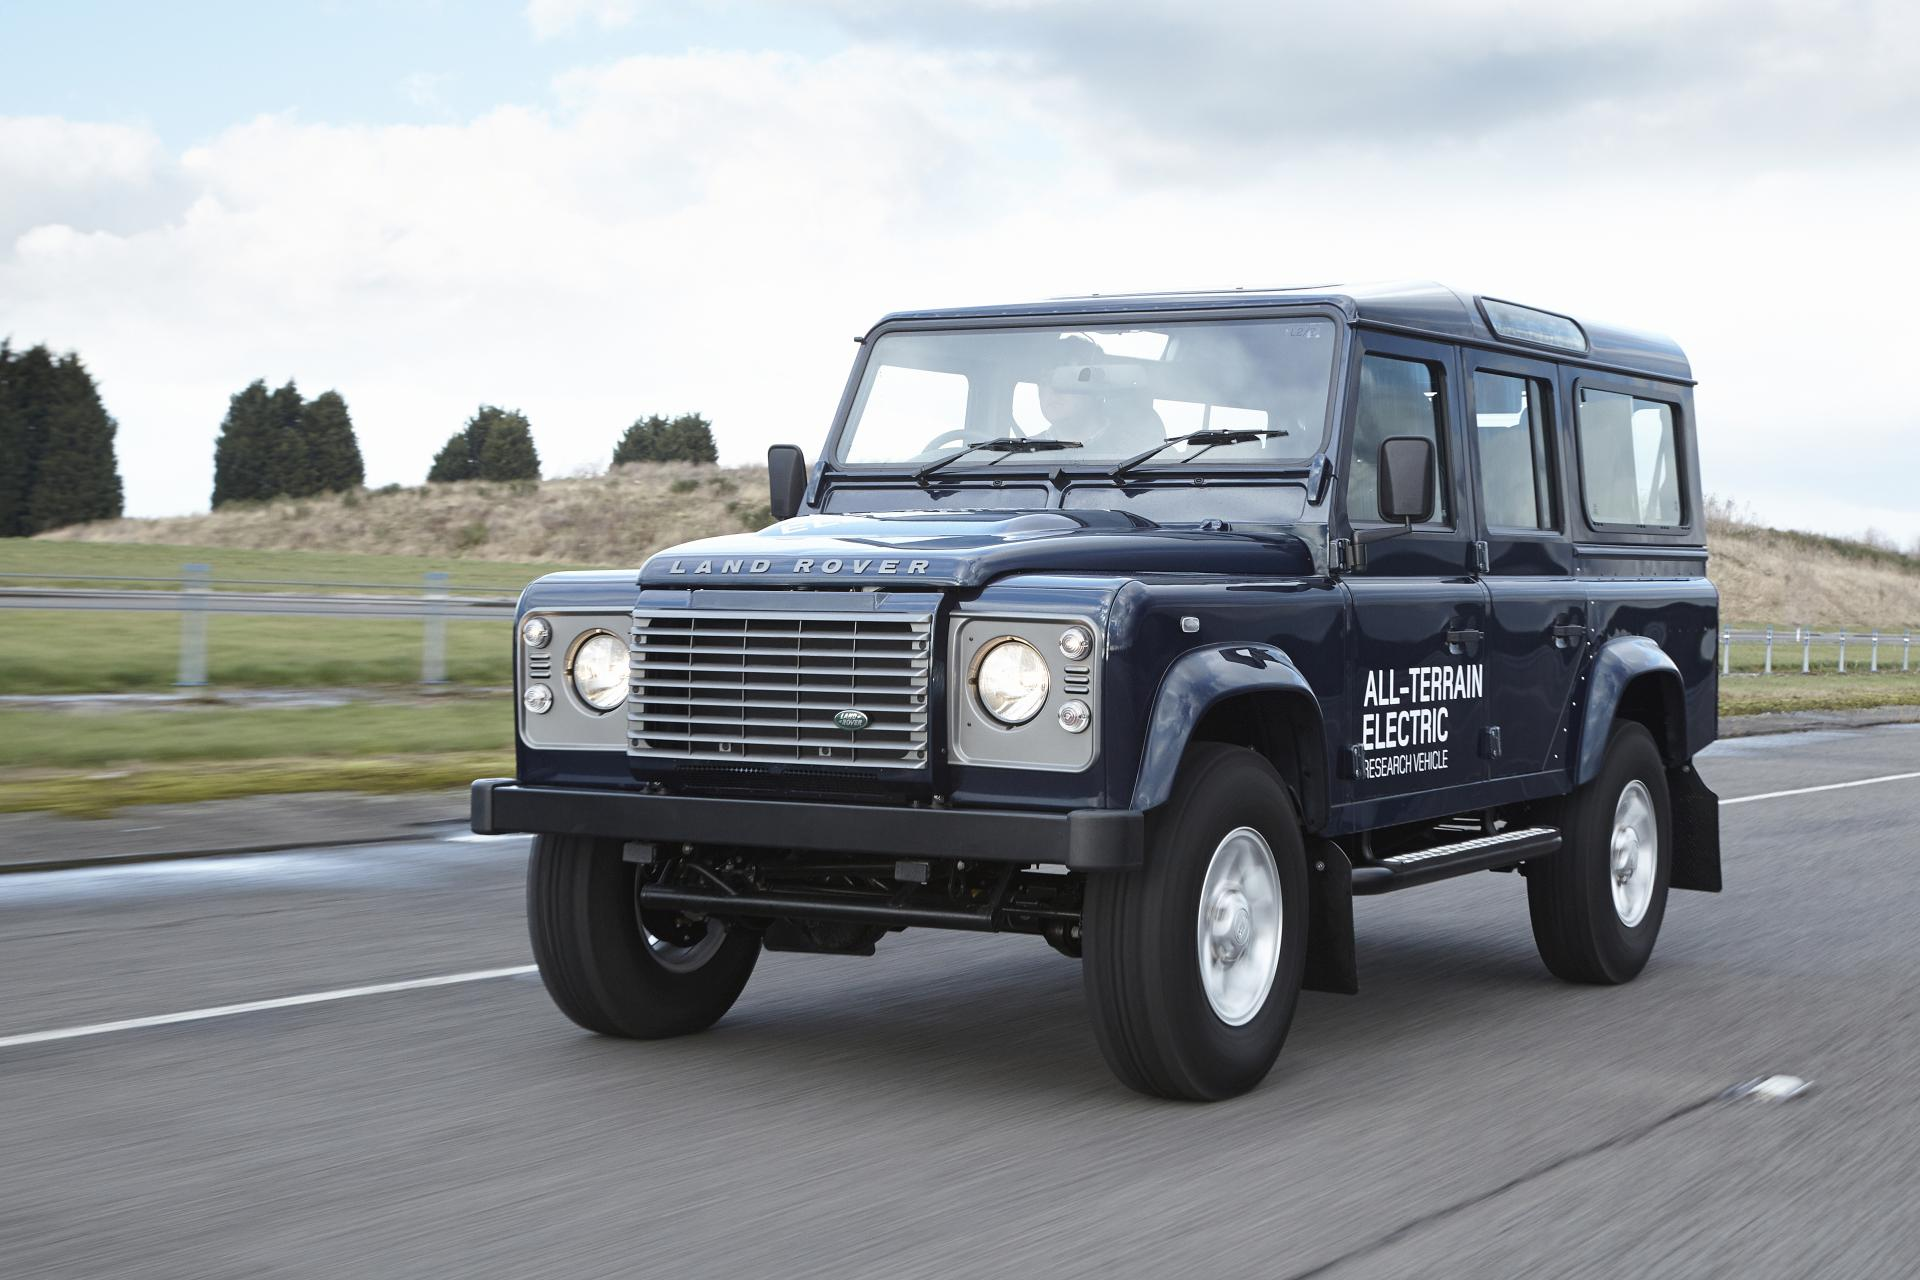 2013 Land Rover Rover Defender Electric Concept